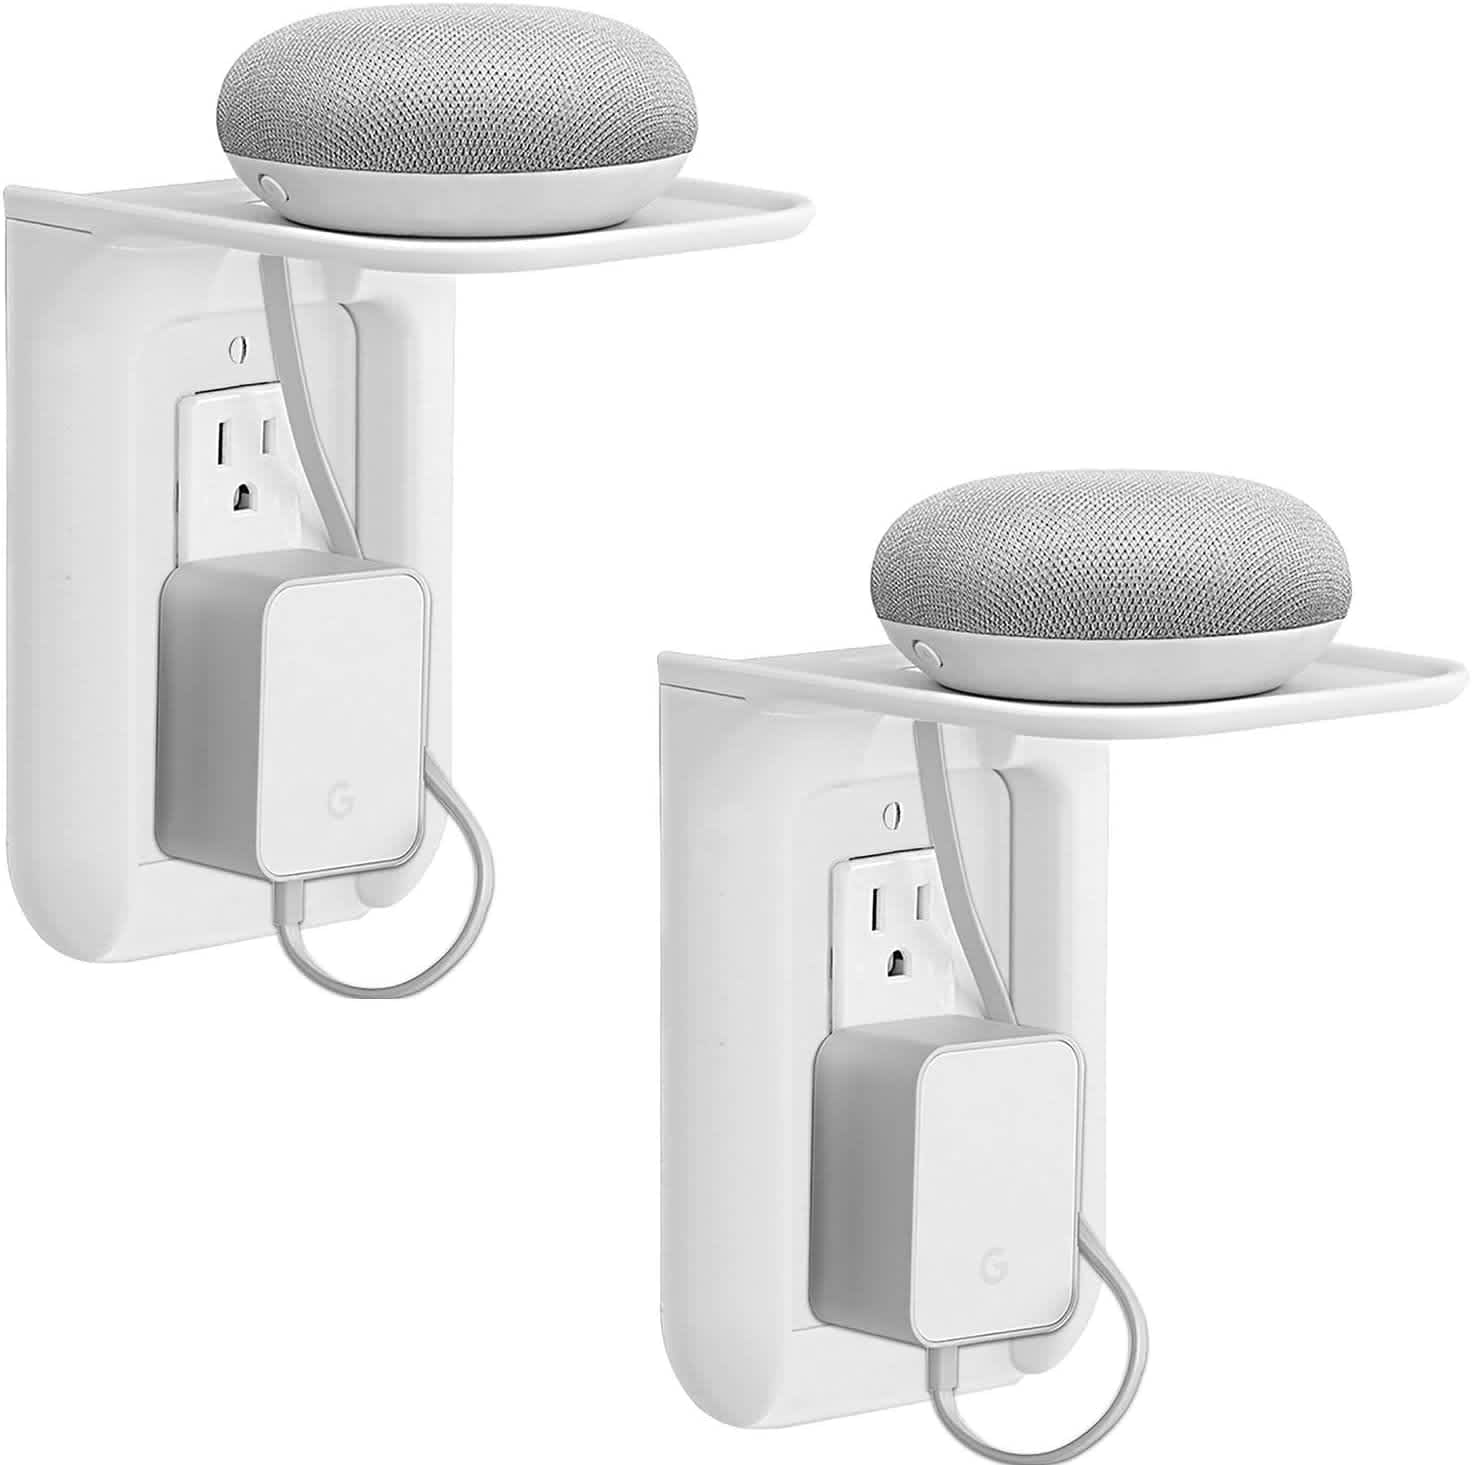 WALI Wall Outlet Shelf 2-Pack